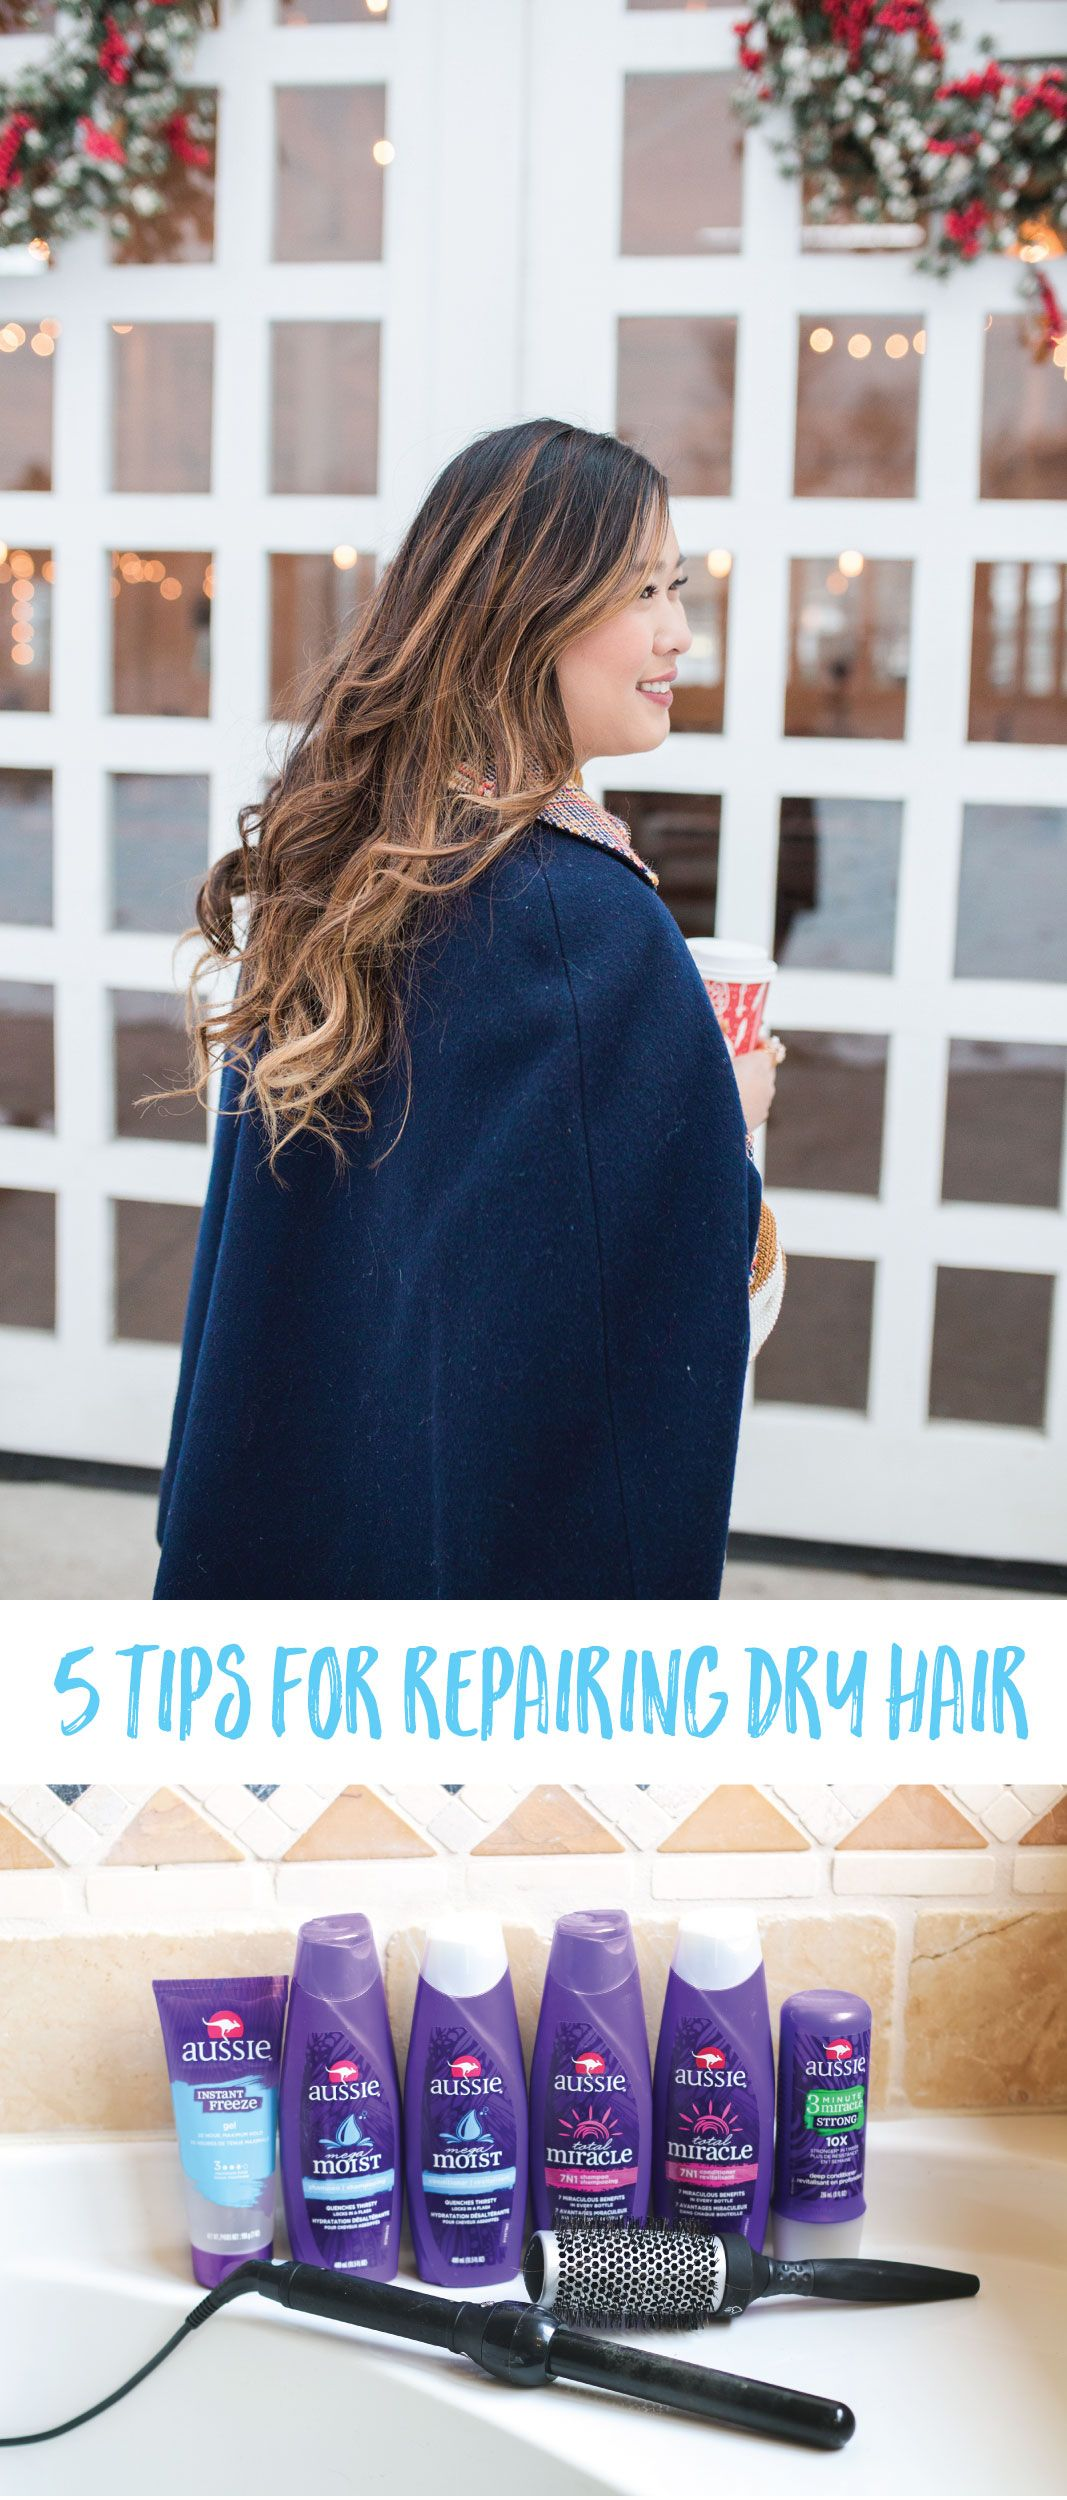 5 Tips For Repairing Dry Hair (With images) Diy hair